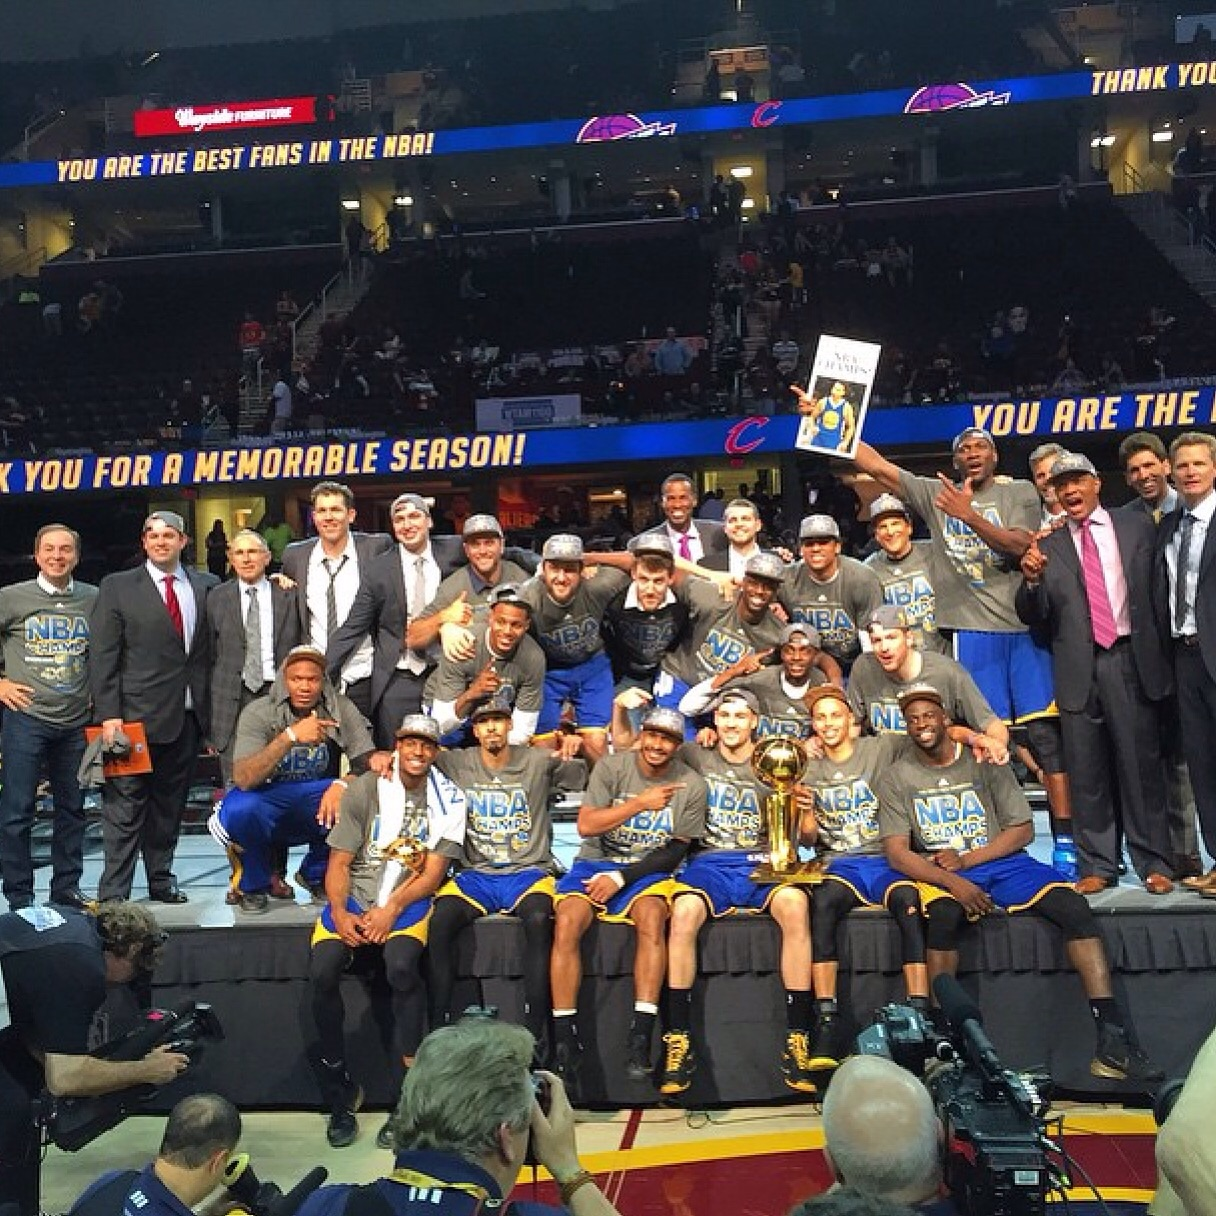 The Golden State Warriors Are The 2015 NBA Champions!